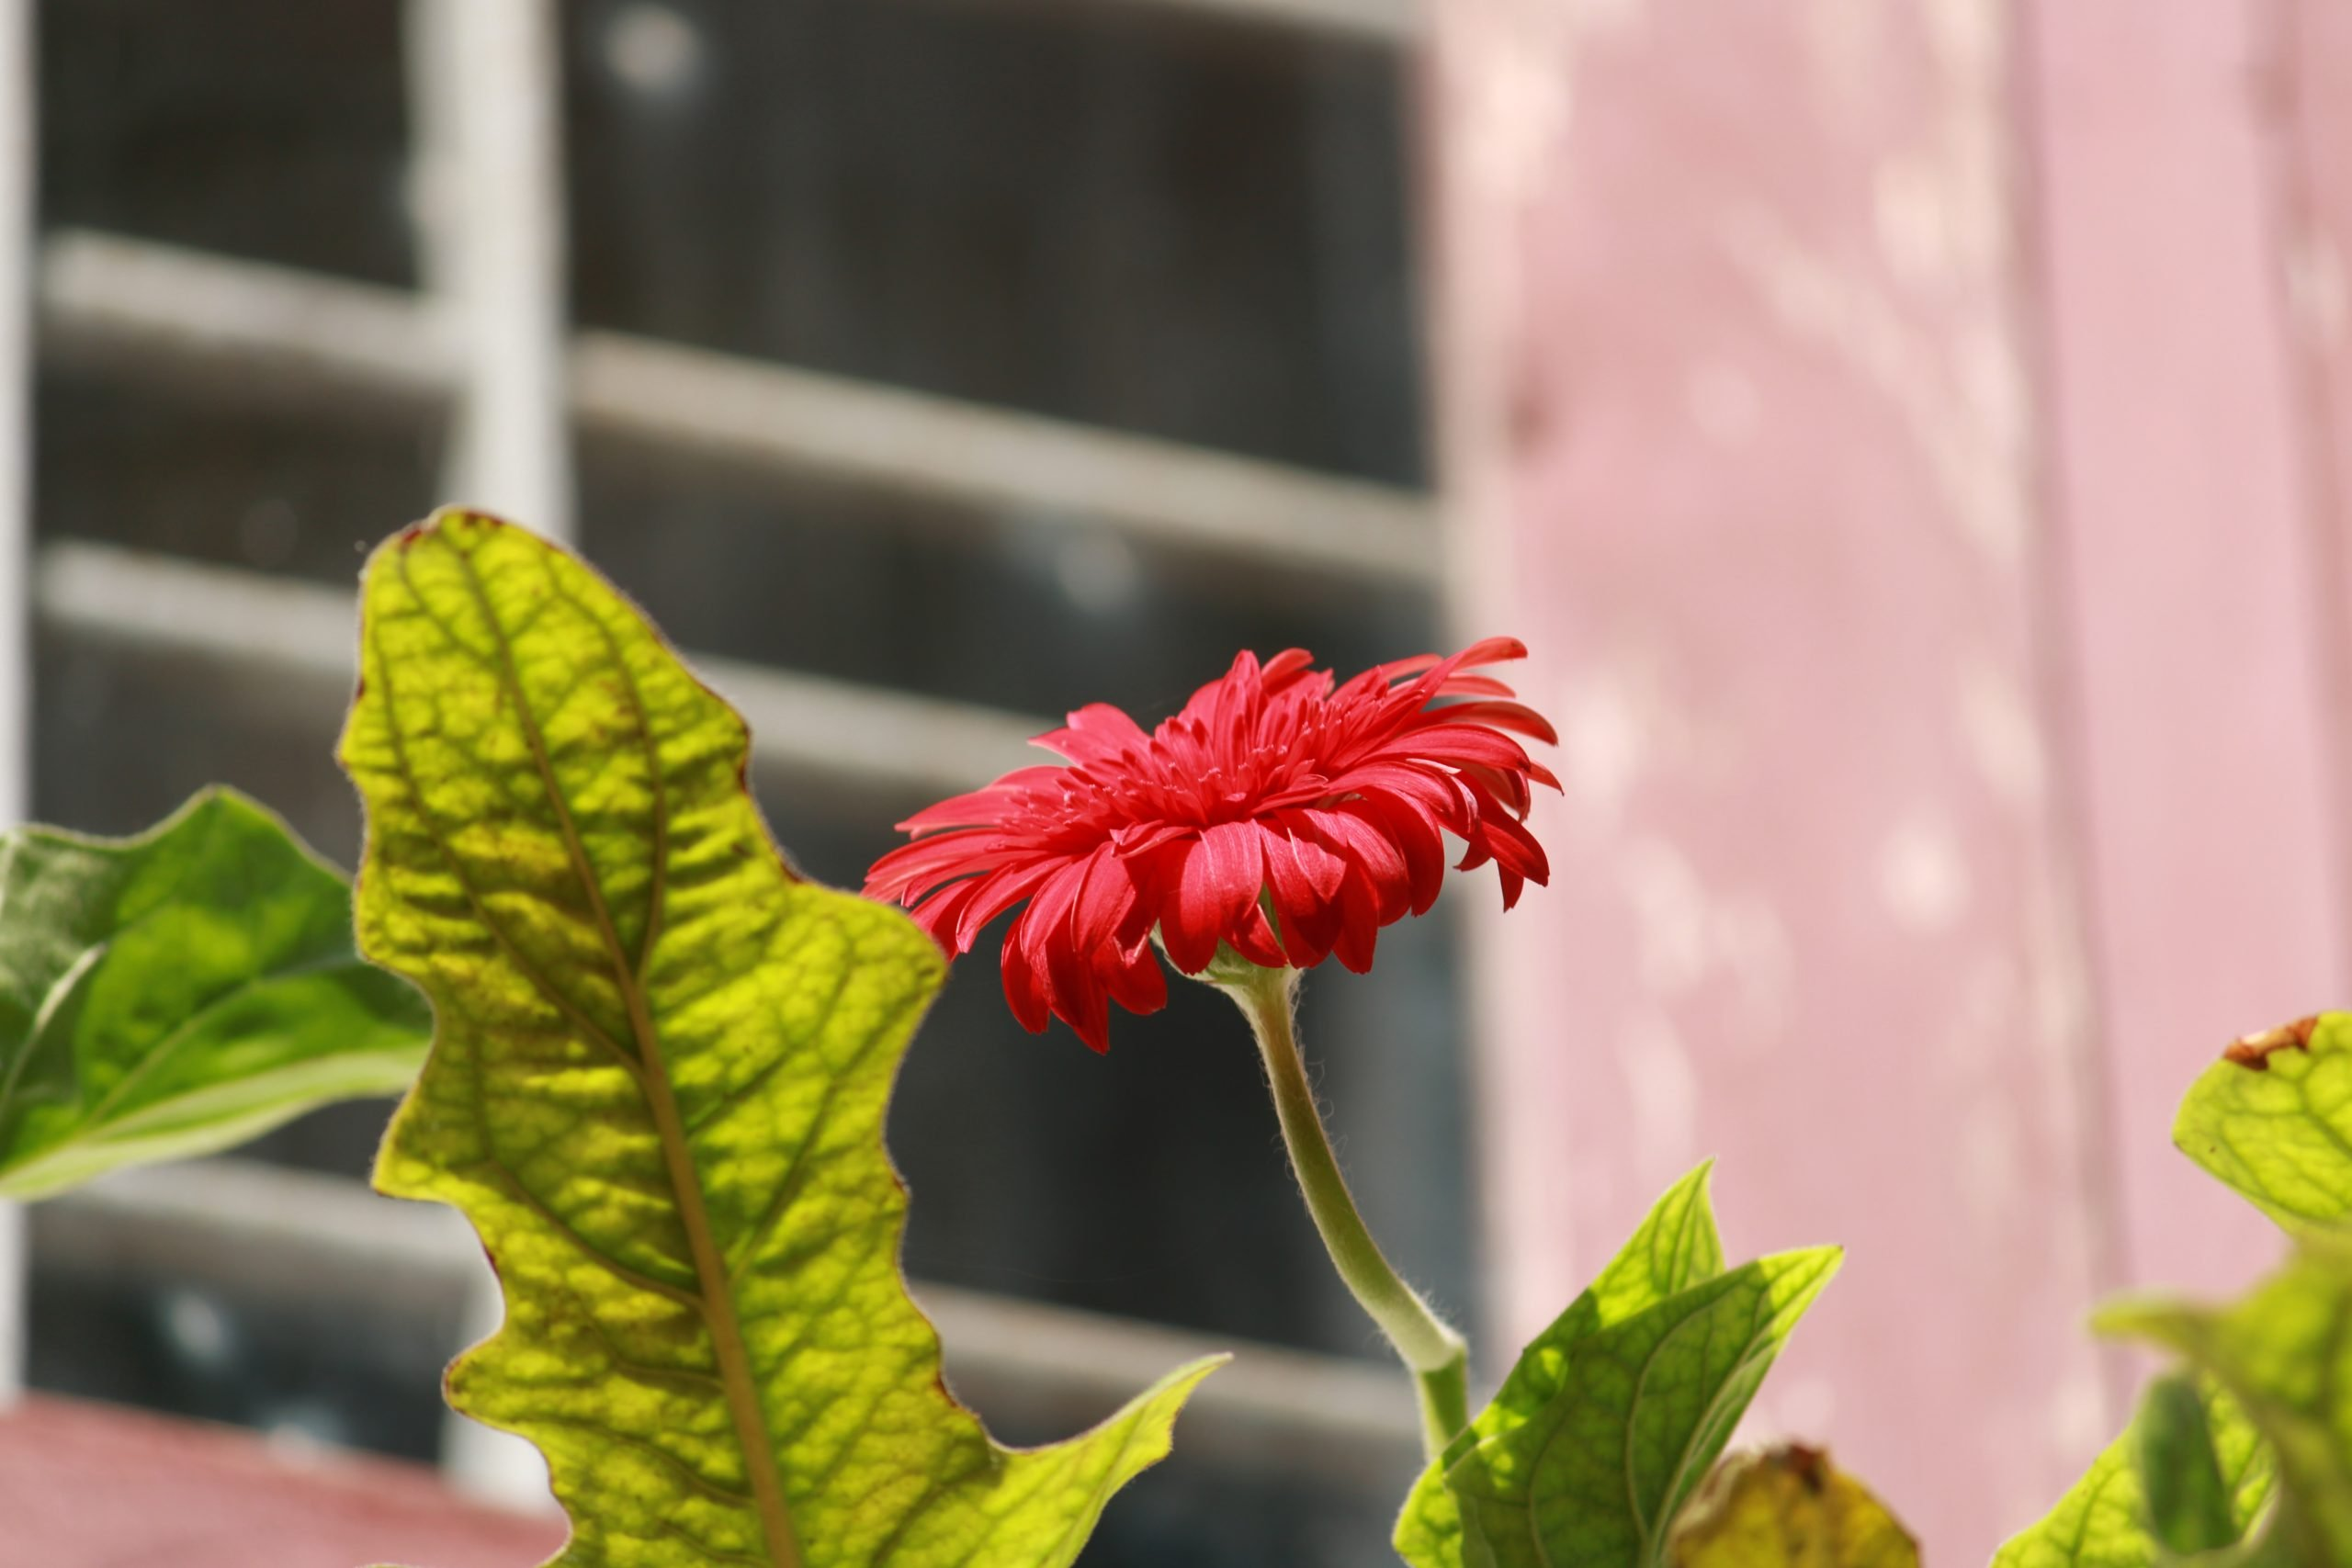 a blooming red flower